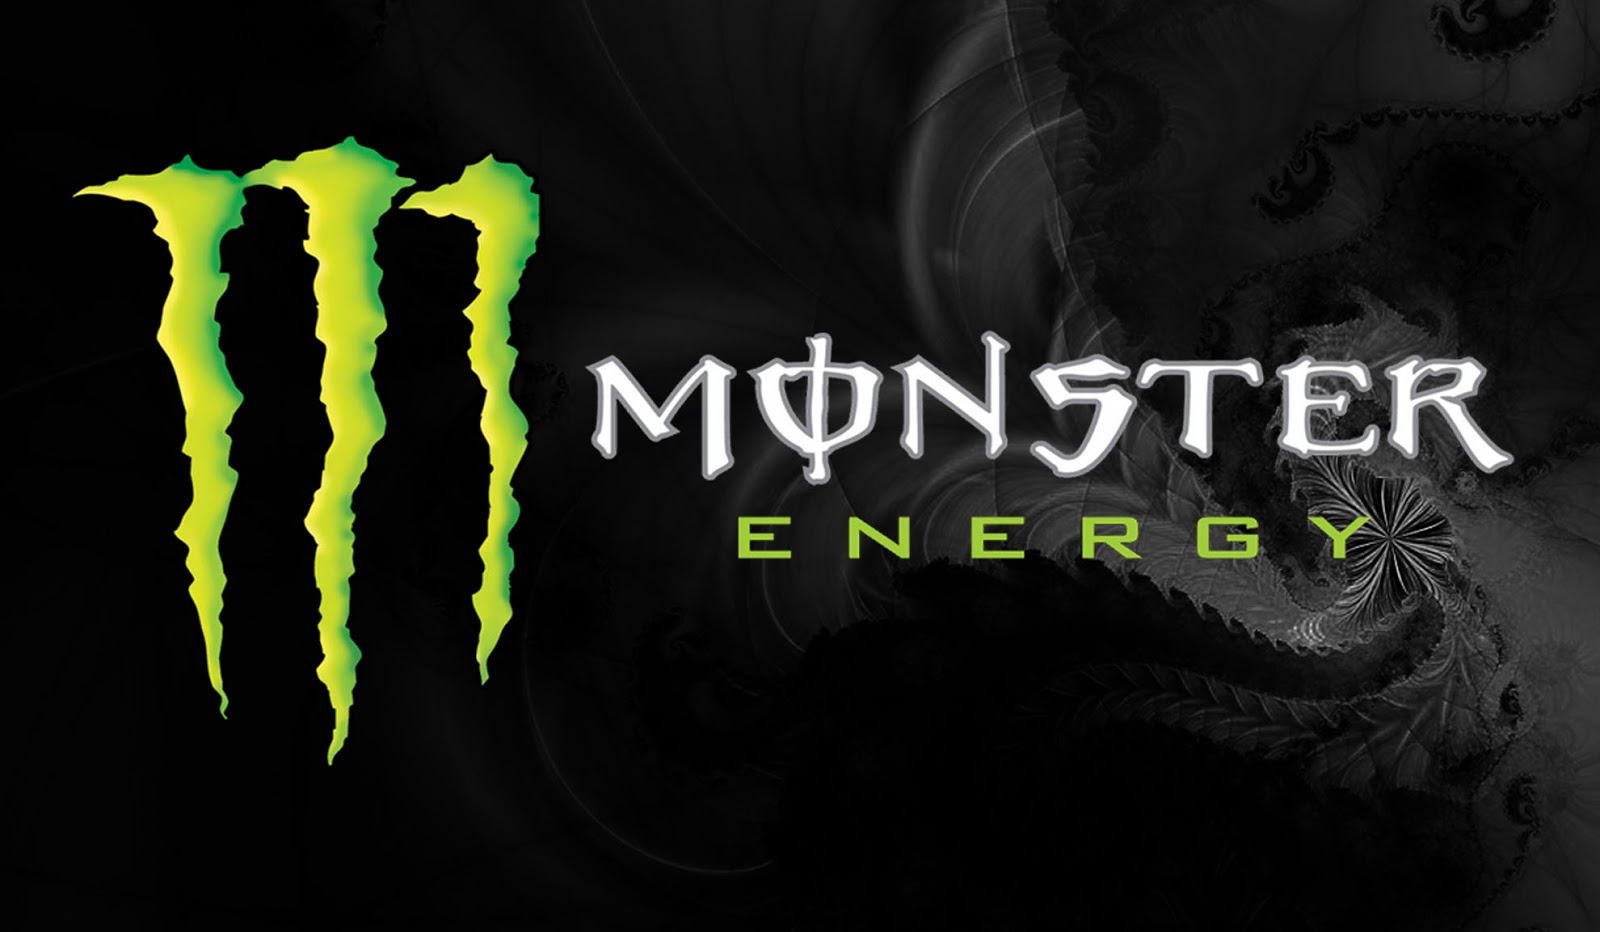 Monster Energy Wallpaper Maceme Wallpaper 1600x932